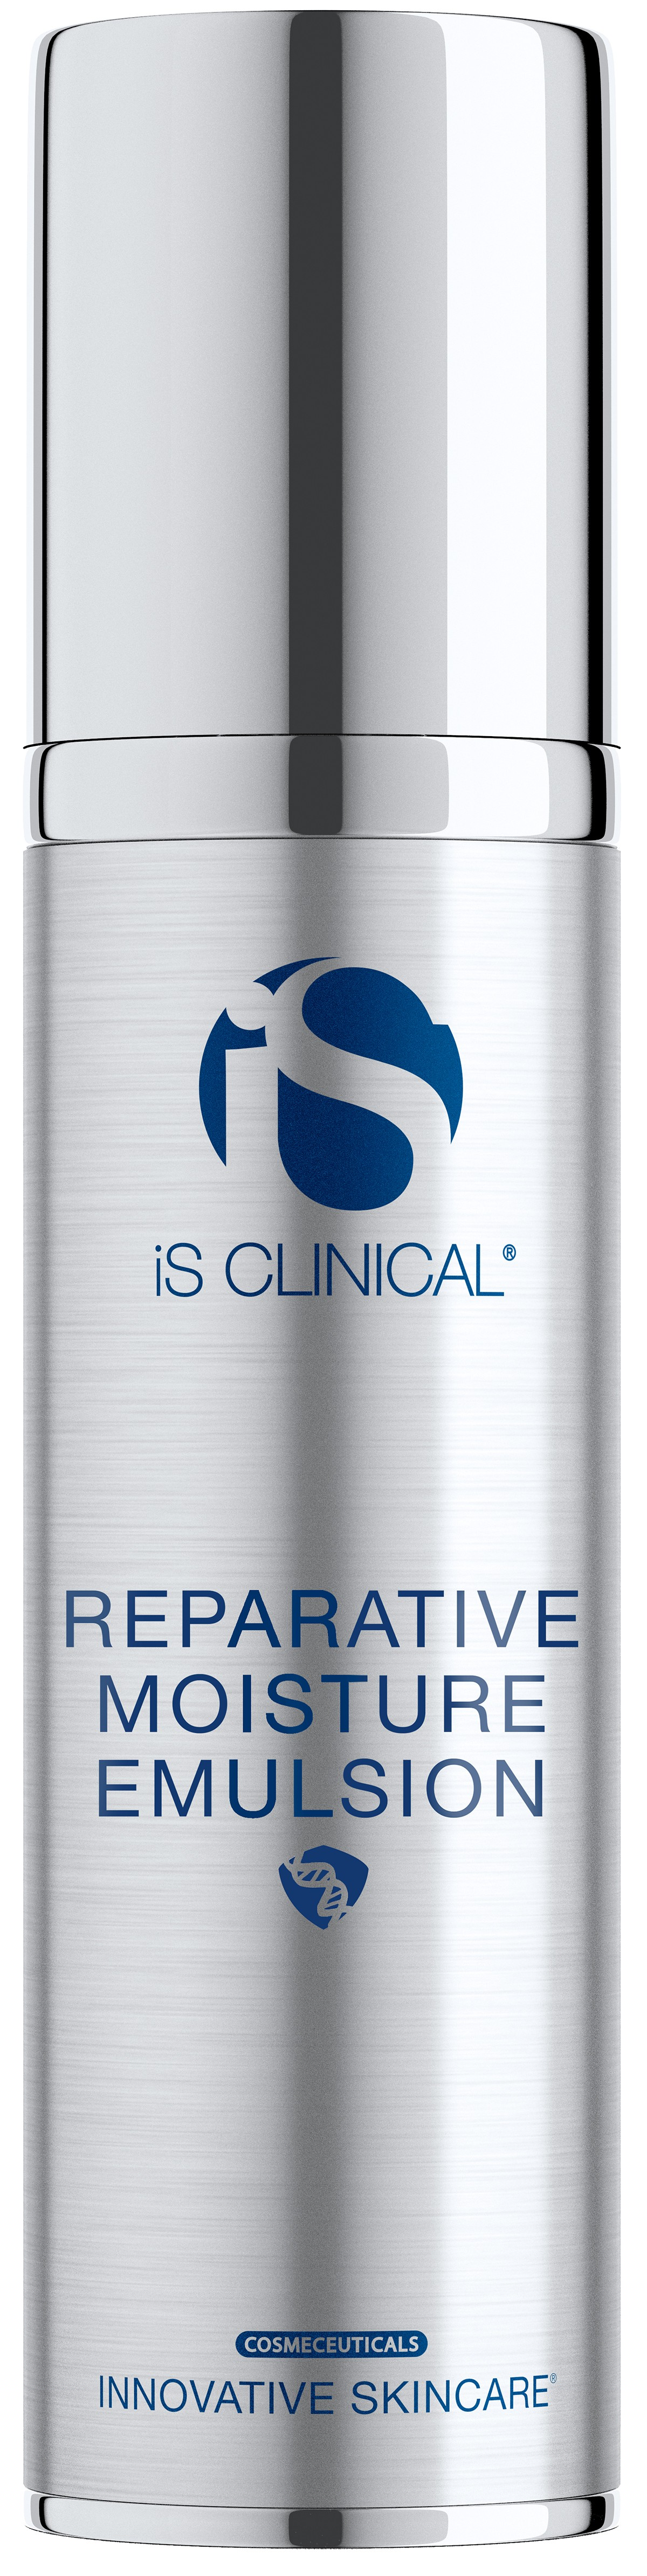 Reparative Moisture Emulsion - IS CLINICAL